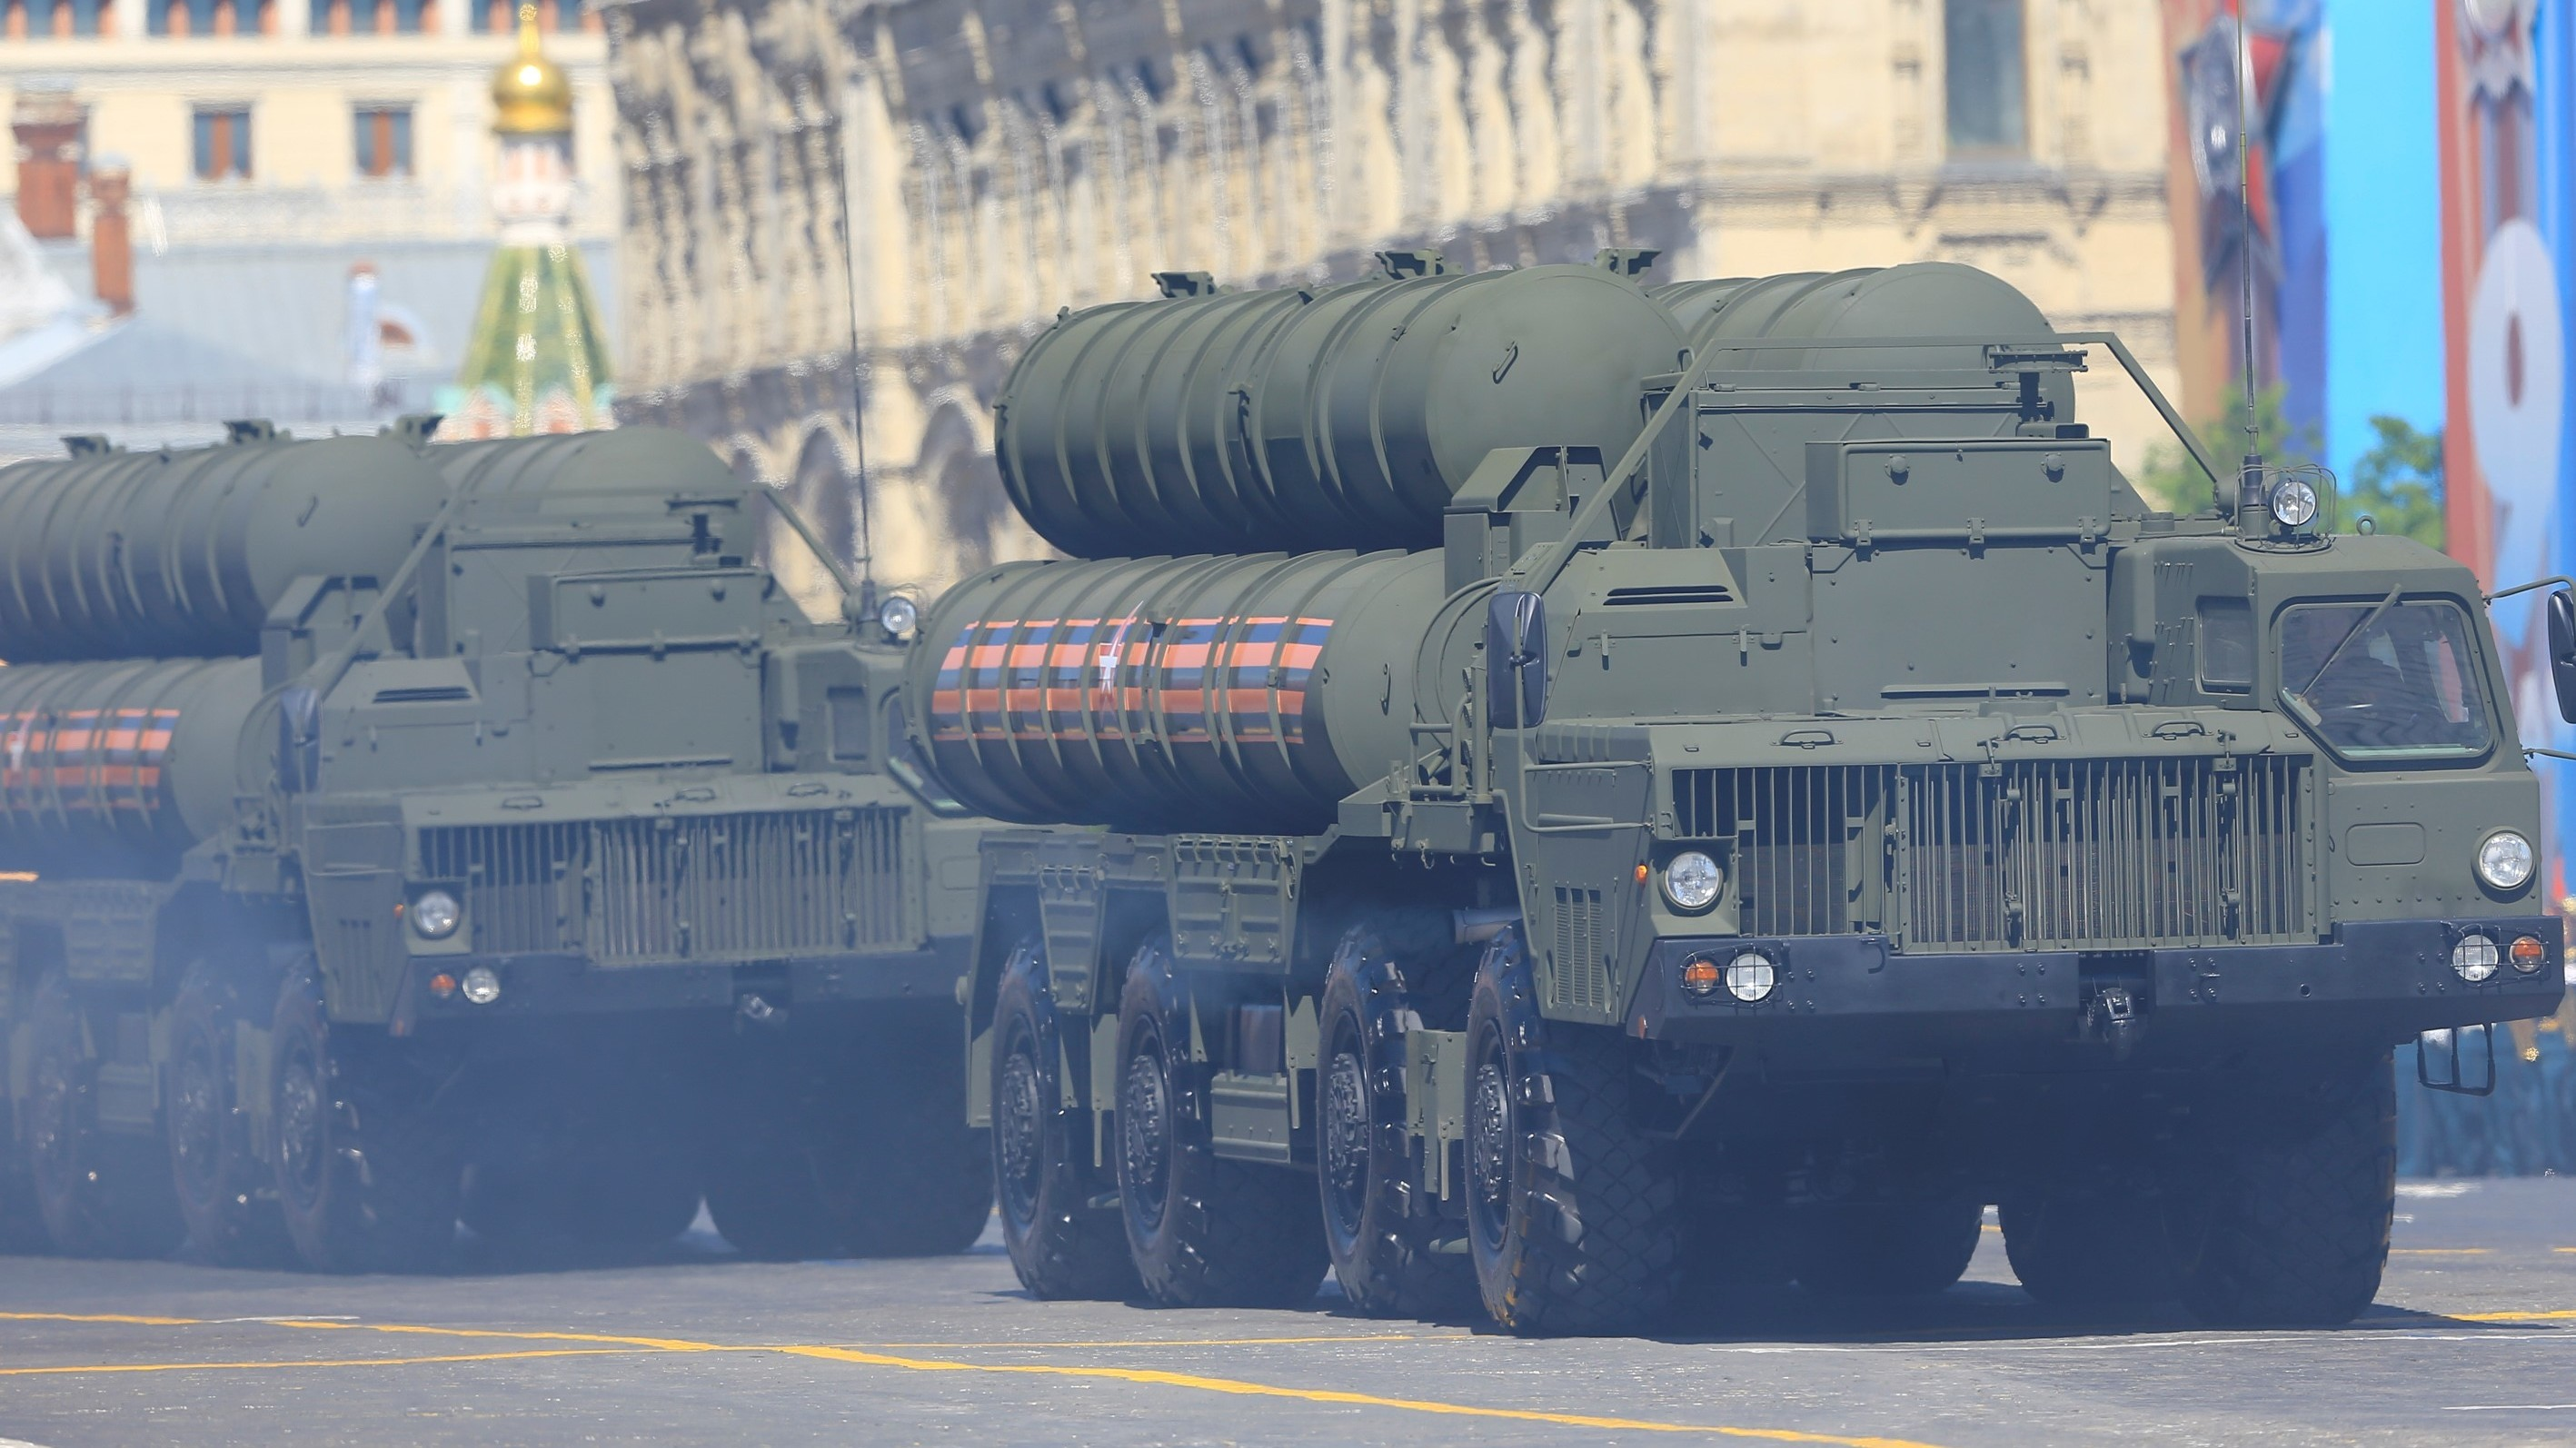 Russia Plans To Deploy More S-400 Missiles To Disputed Crimea Peninsula